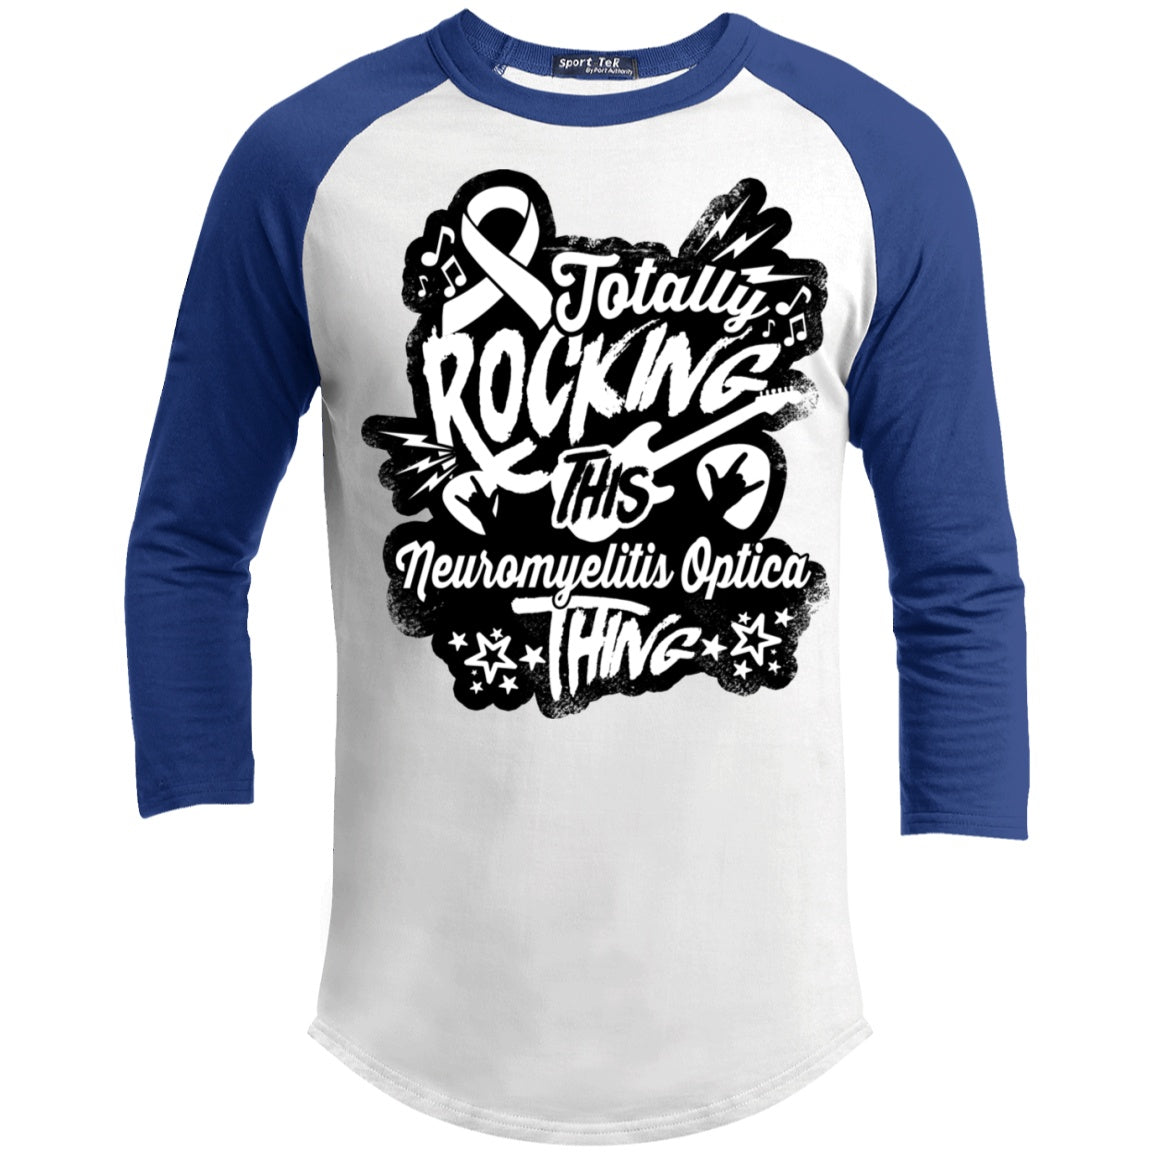 Rocking Neuromyelitis Optica Baseball Shirt - The Unchargeables